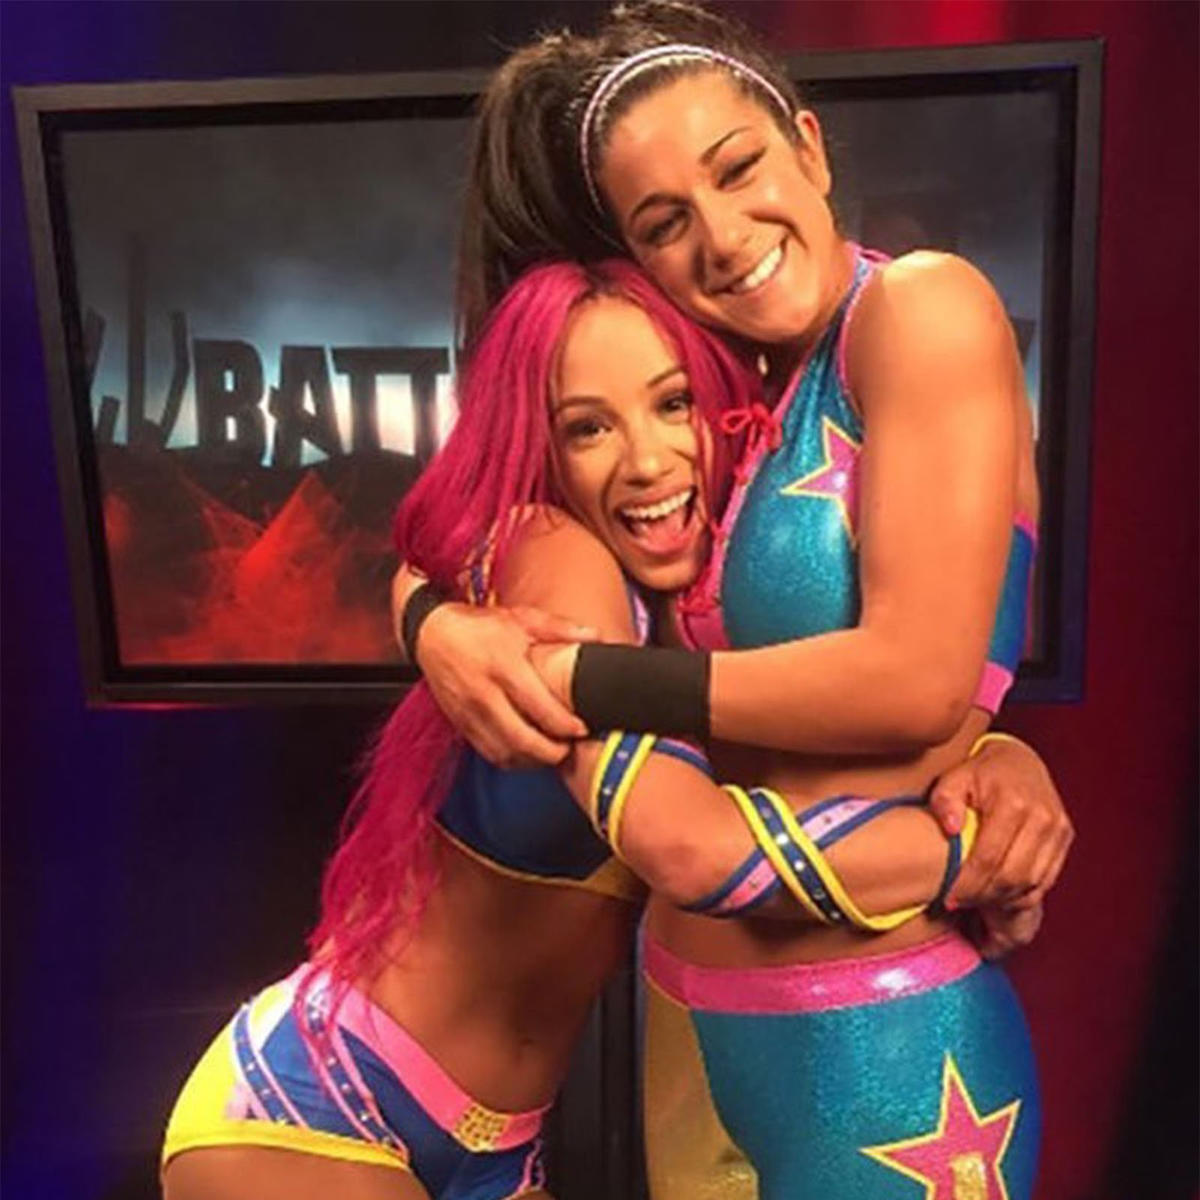 30 Stunning Instagram Photos Of Sasha Banks Wwe Olhando para o nada e. 30 stunning instagram photos of sasha